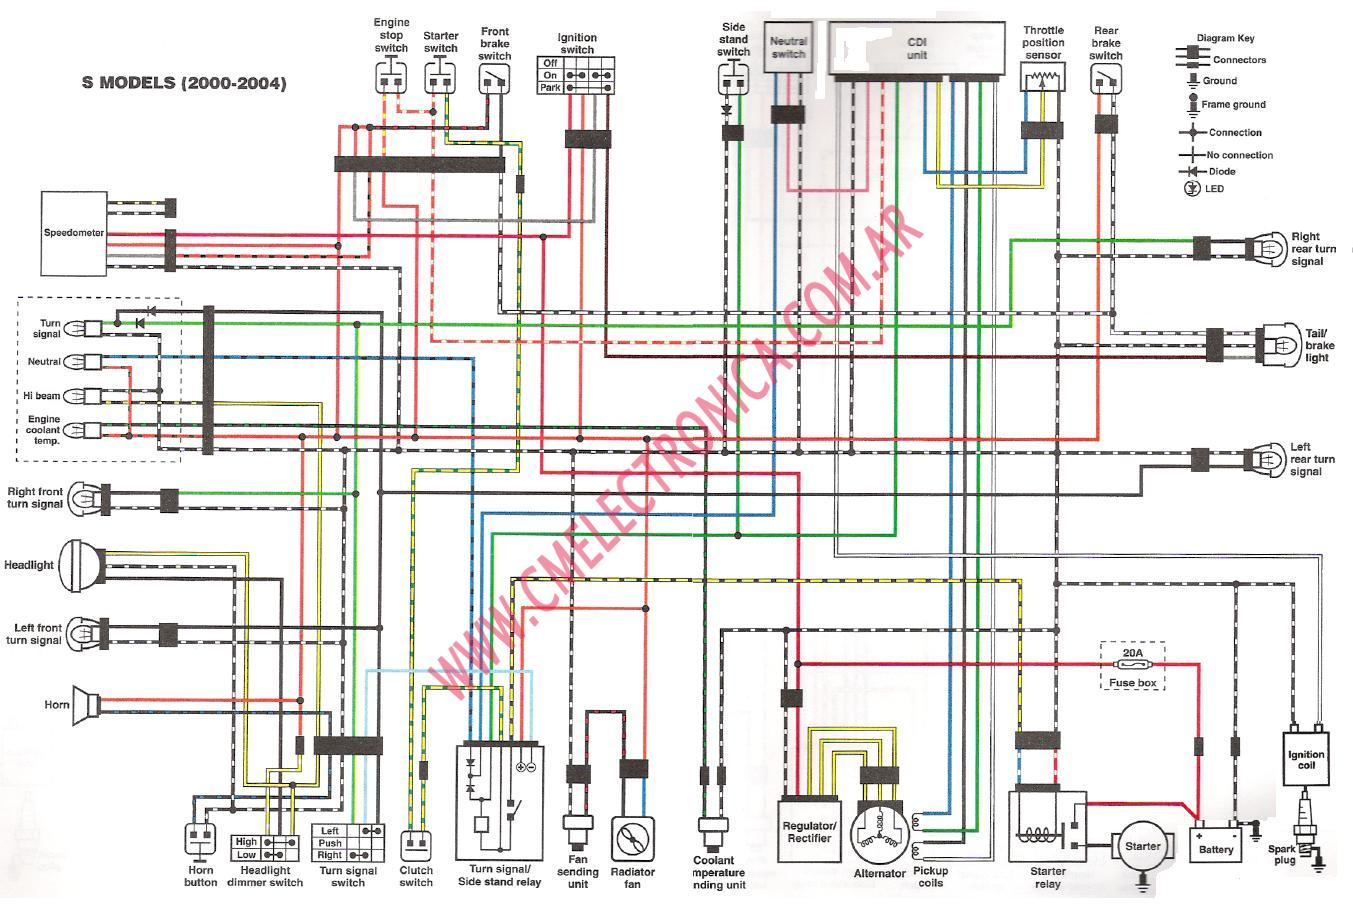 suzuki drz400s wiring diagram suzuki gsxr 600 1993 the wiring diagram suzuki eiger wiring diagram at gsmx.co